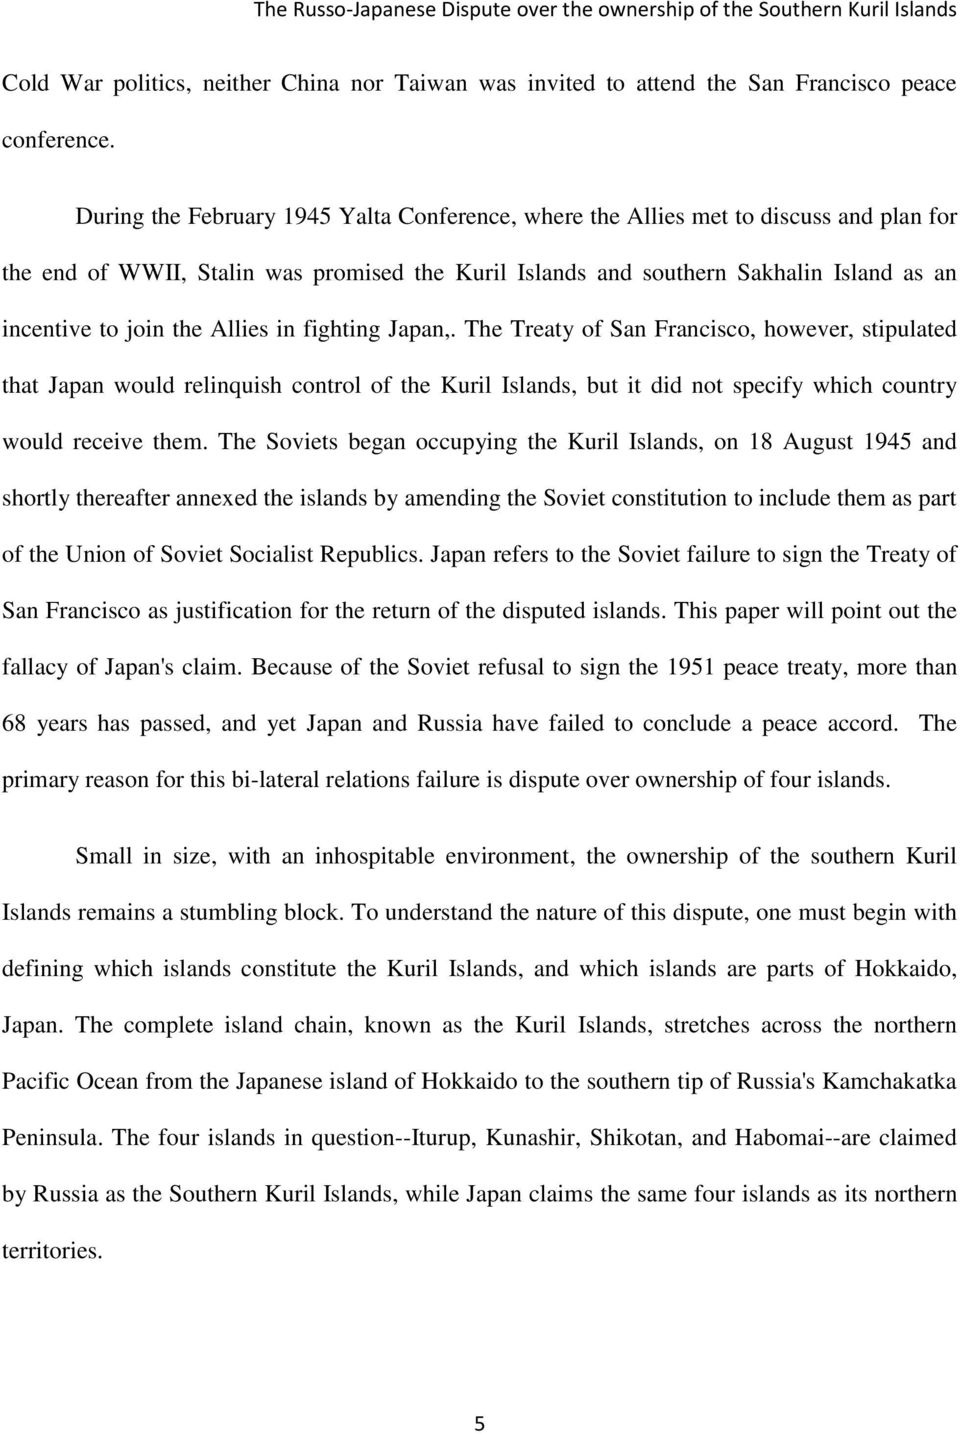 Allies in fighting Japan,. The Treaty of San Francisco, however, stipulated that Japan would relinquish control of the Kuril Islands, but it did not specify which country would receive them.